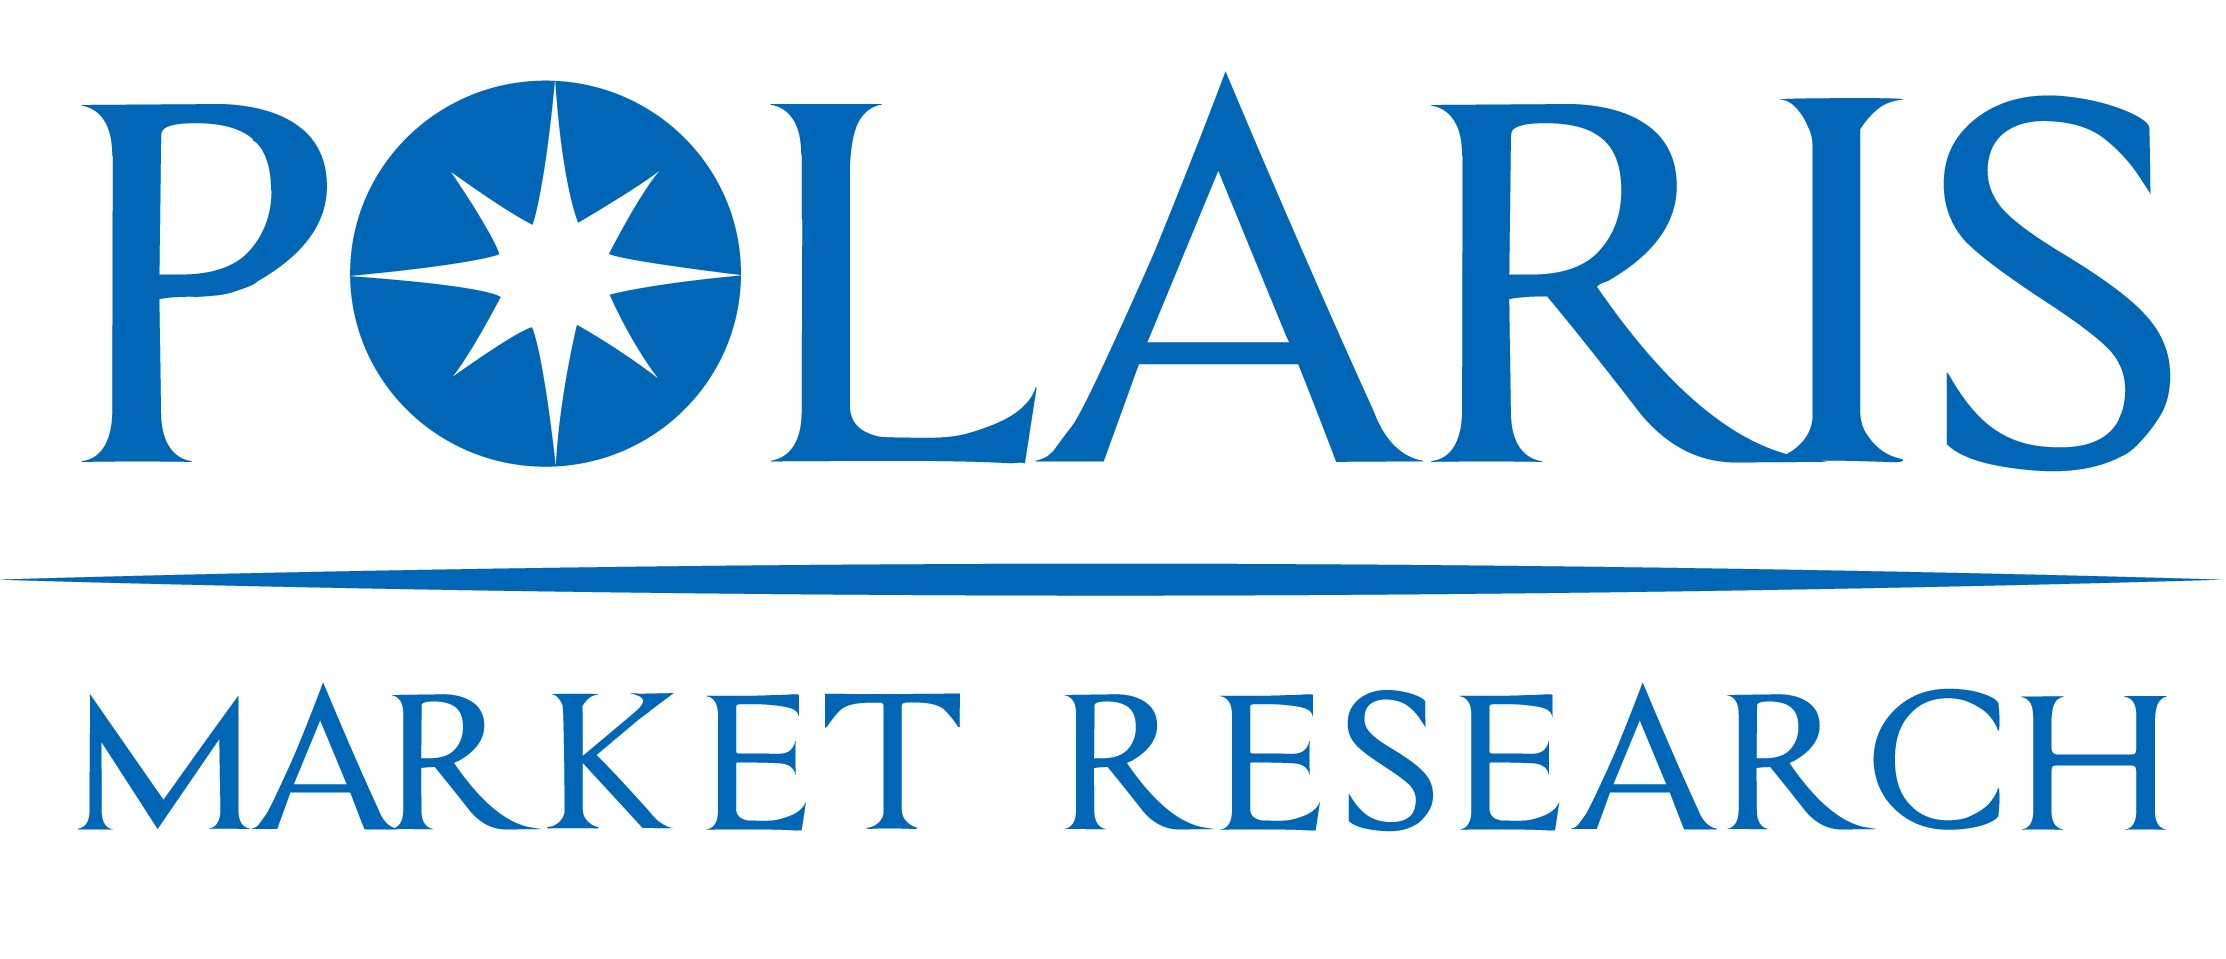 Hospital Capacity Management Solutions Market Is Projected To Reach $9.55 Billion By 2028 | CAGR: 16.9% : Polaris Market Research